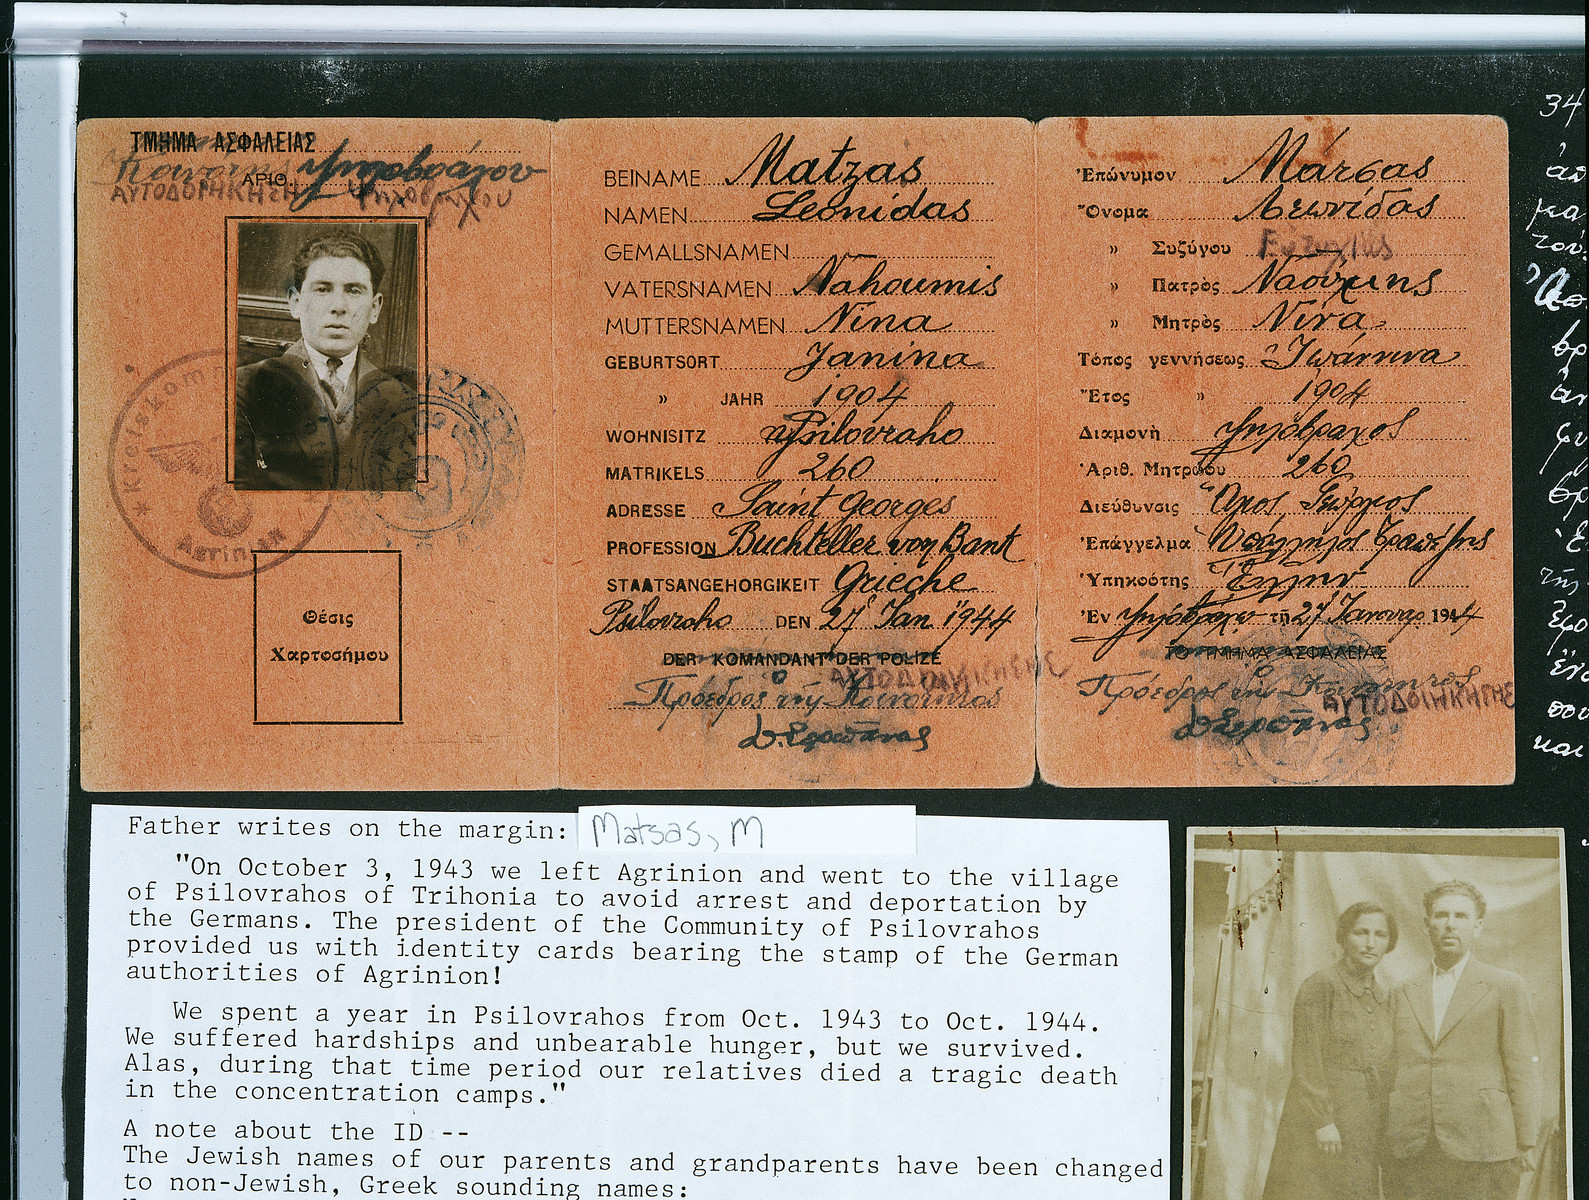 False papers issued to Leon Matsas with the cooperation of mayor of the town who forwarded them to the German authorities for a proper stamp.